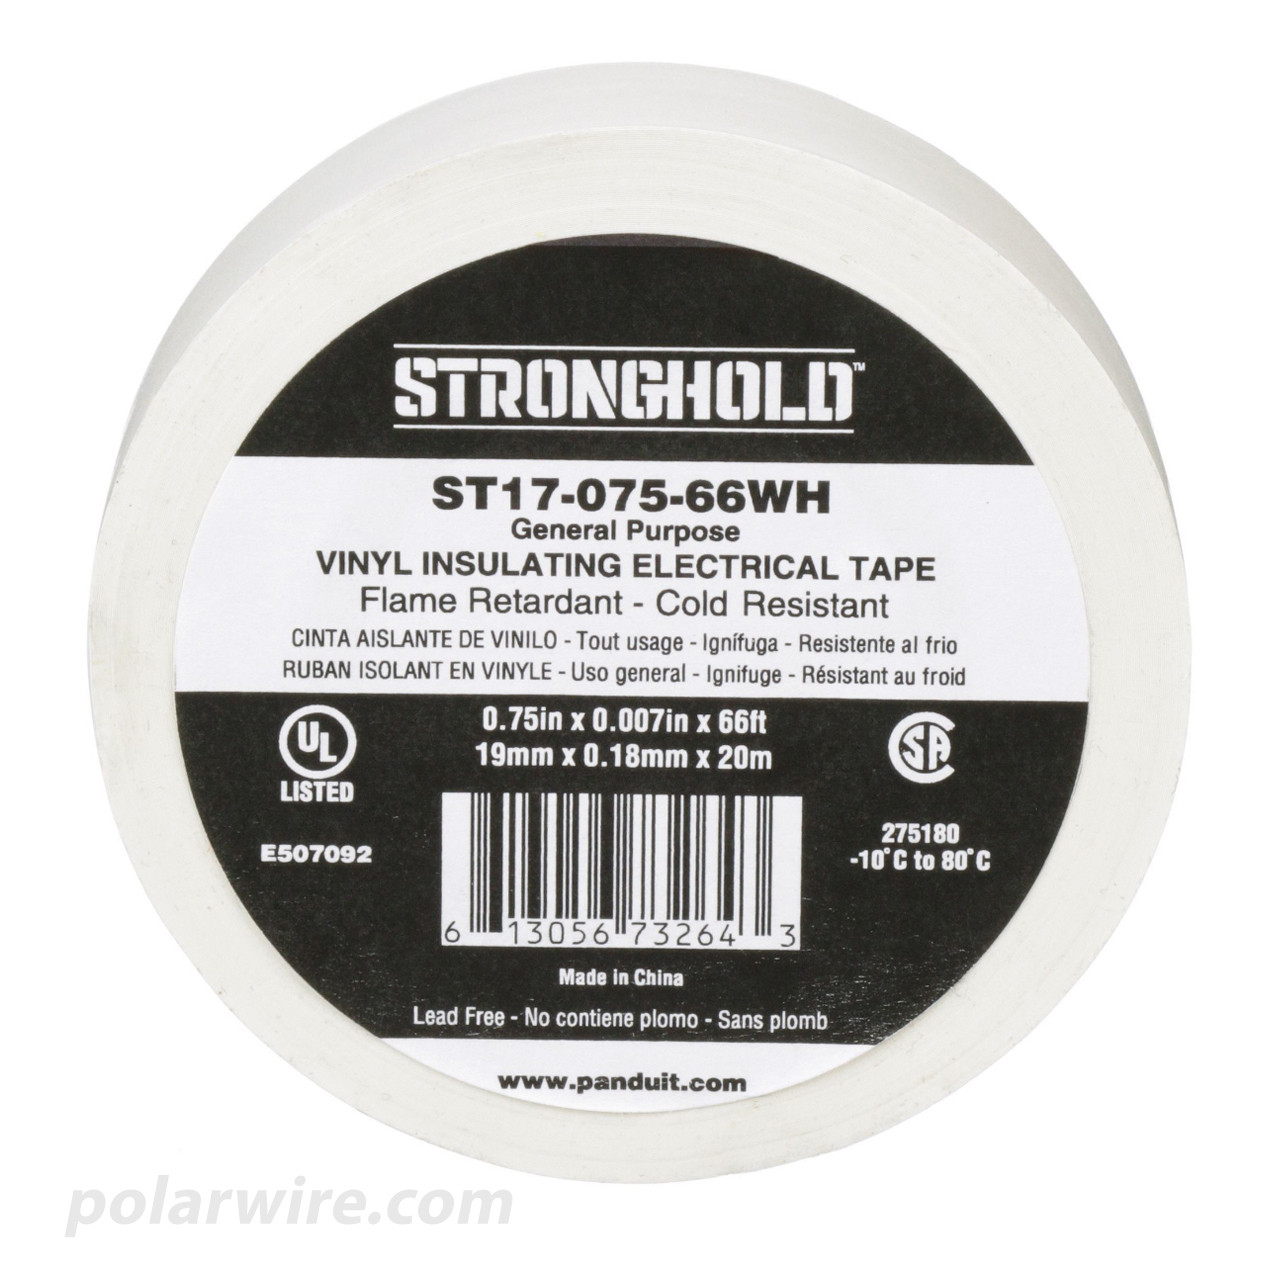 3/4 inch White PVC Vinyl Electrical Tape Panduit Stronghold